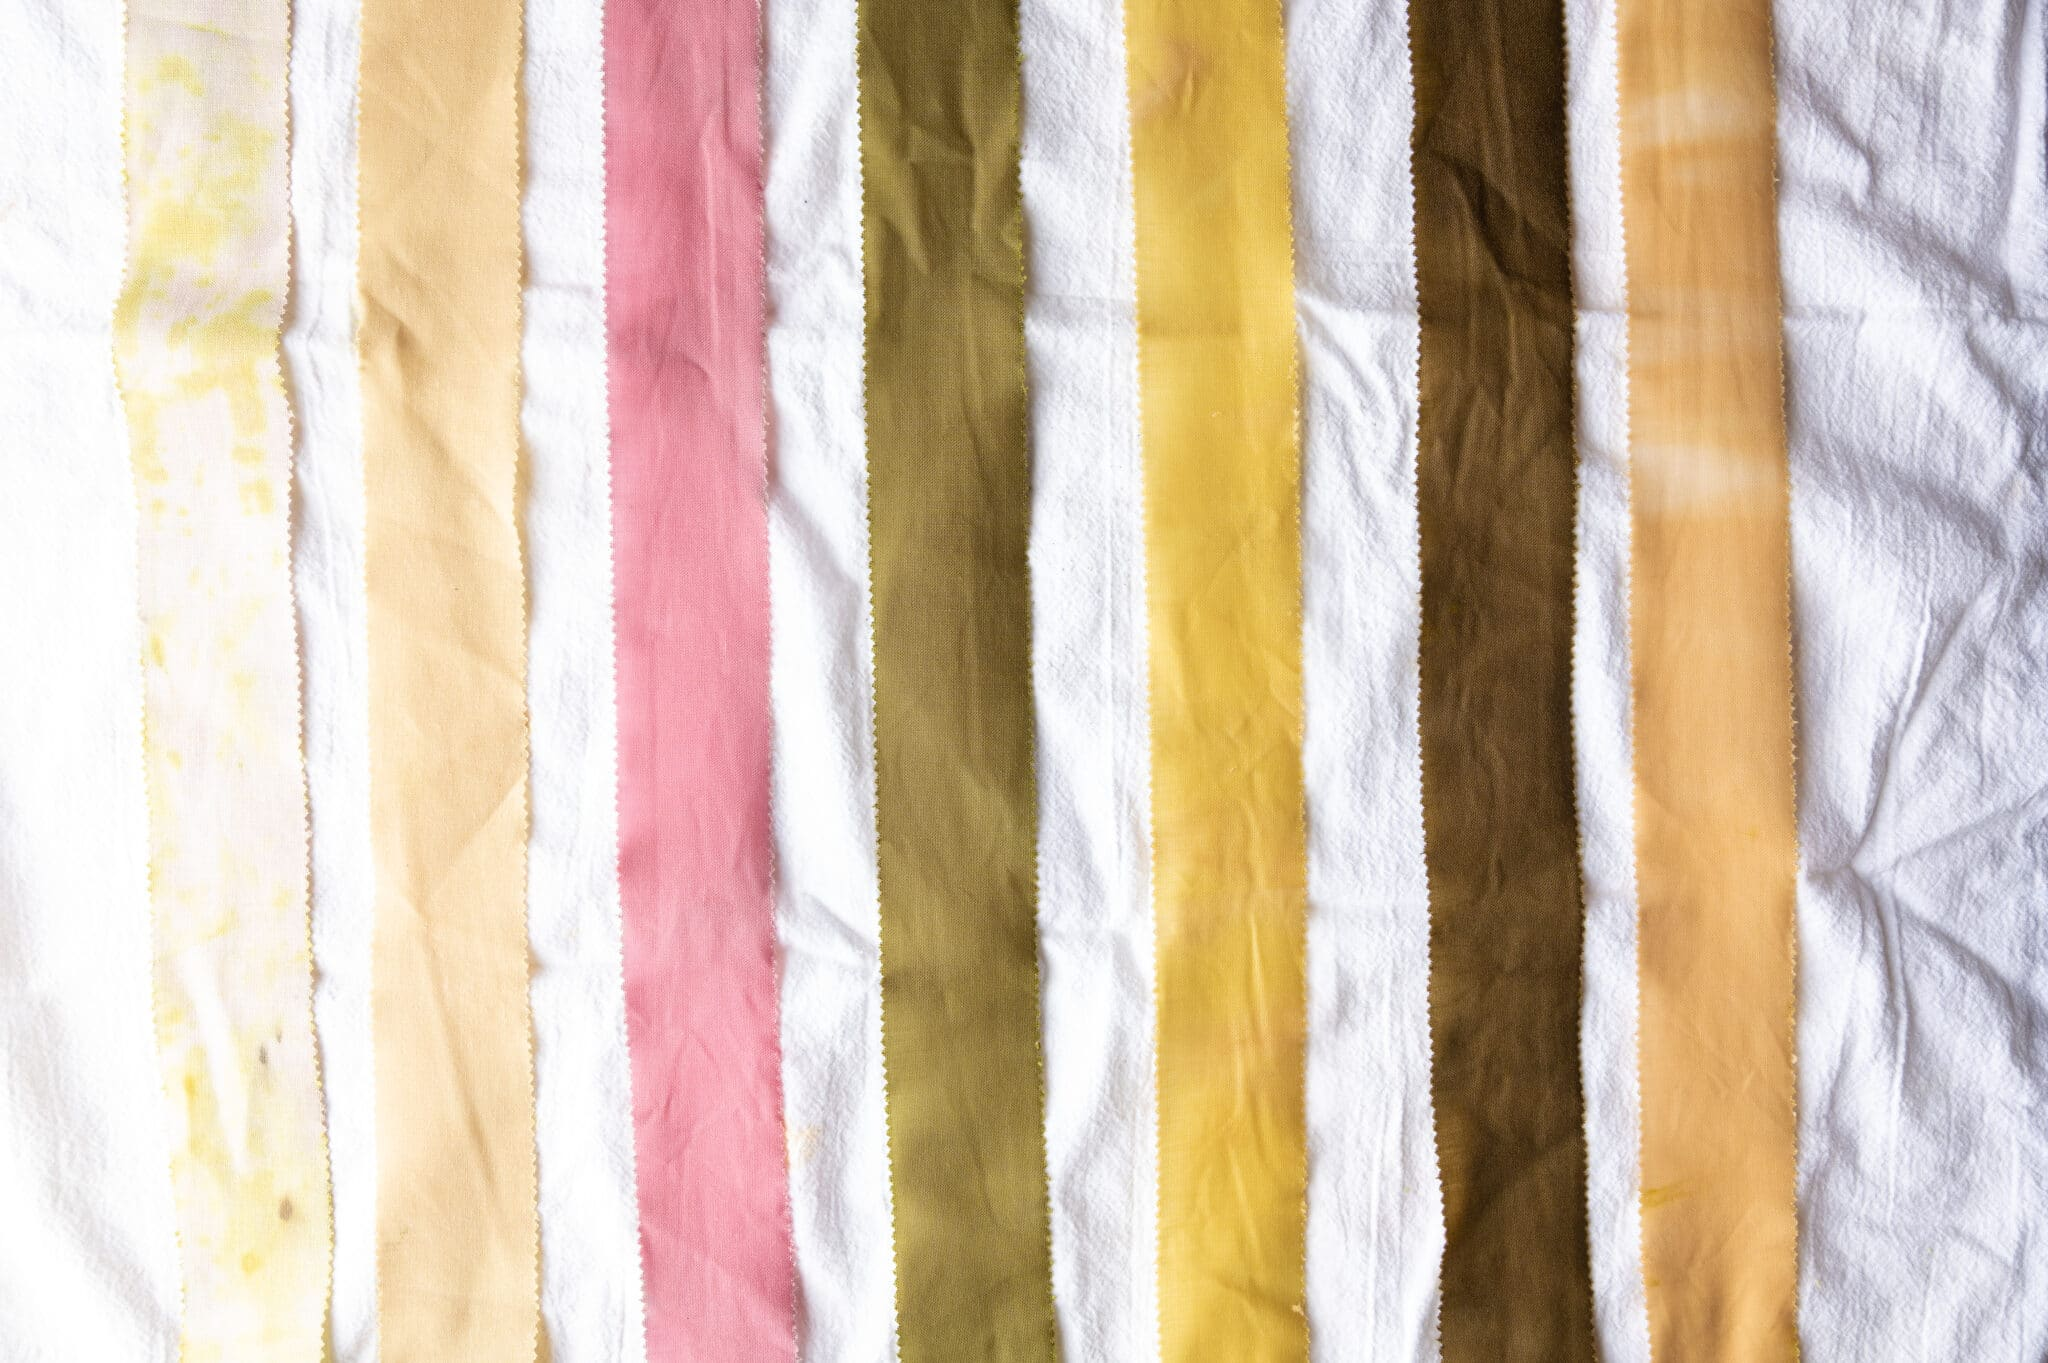 Seven strips of fabric that were dyed using natural dye made from onion skins. Each strip is a different shade, ranging from brown to yellow to pink.